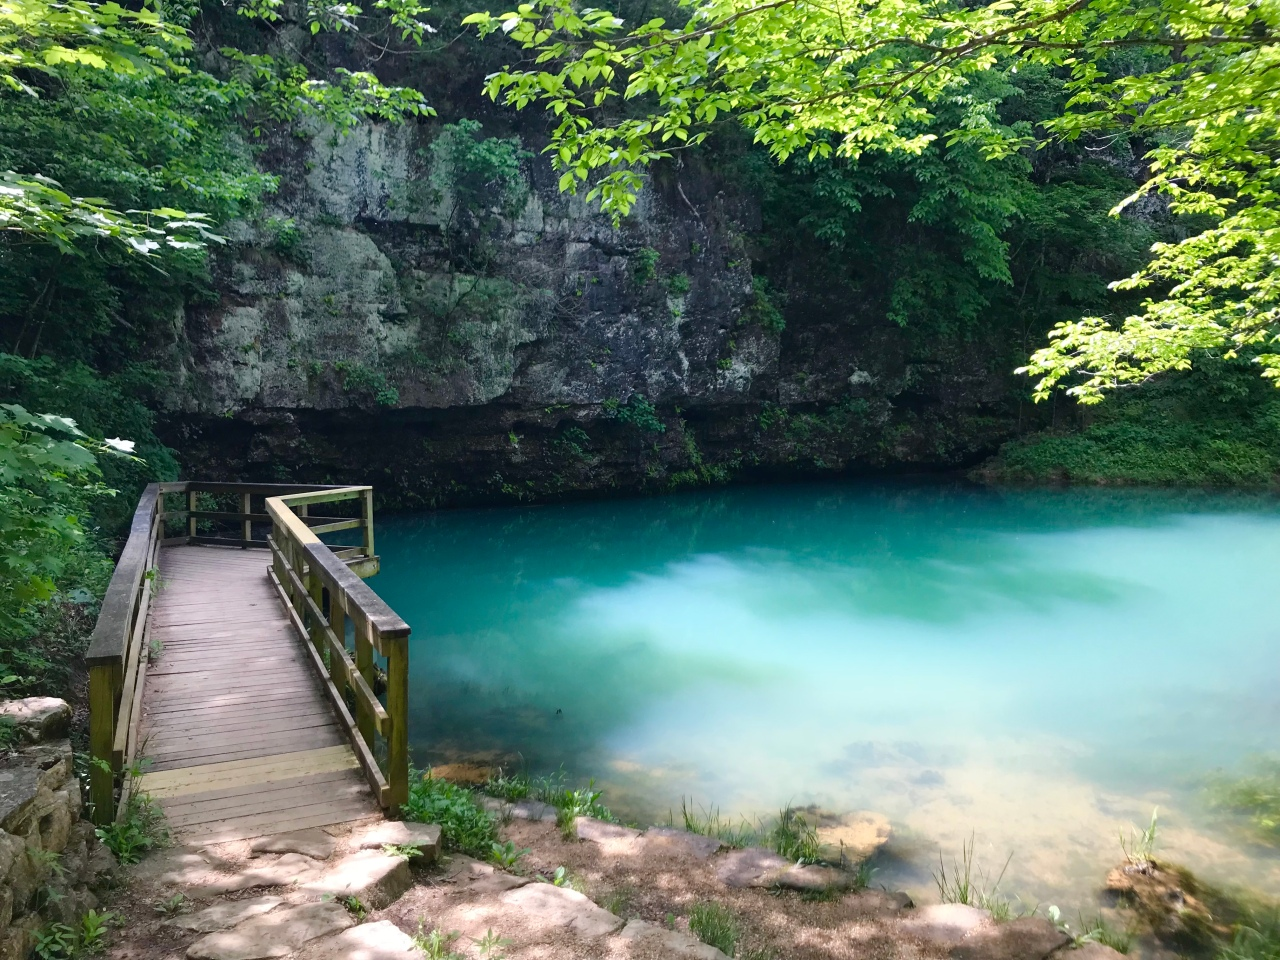 Blue Spring – Missouri